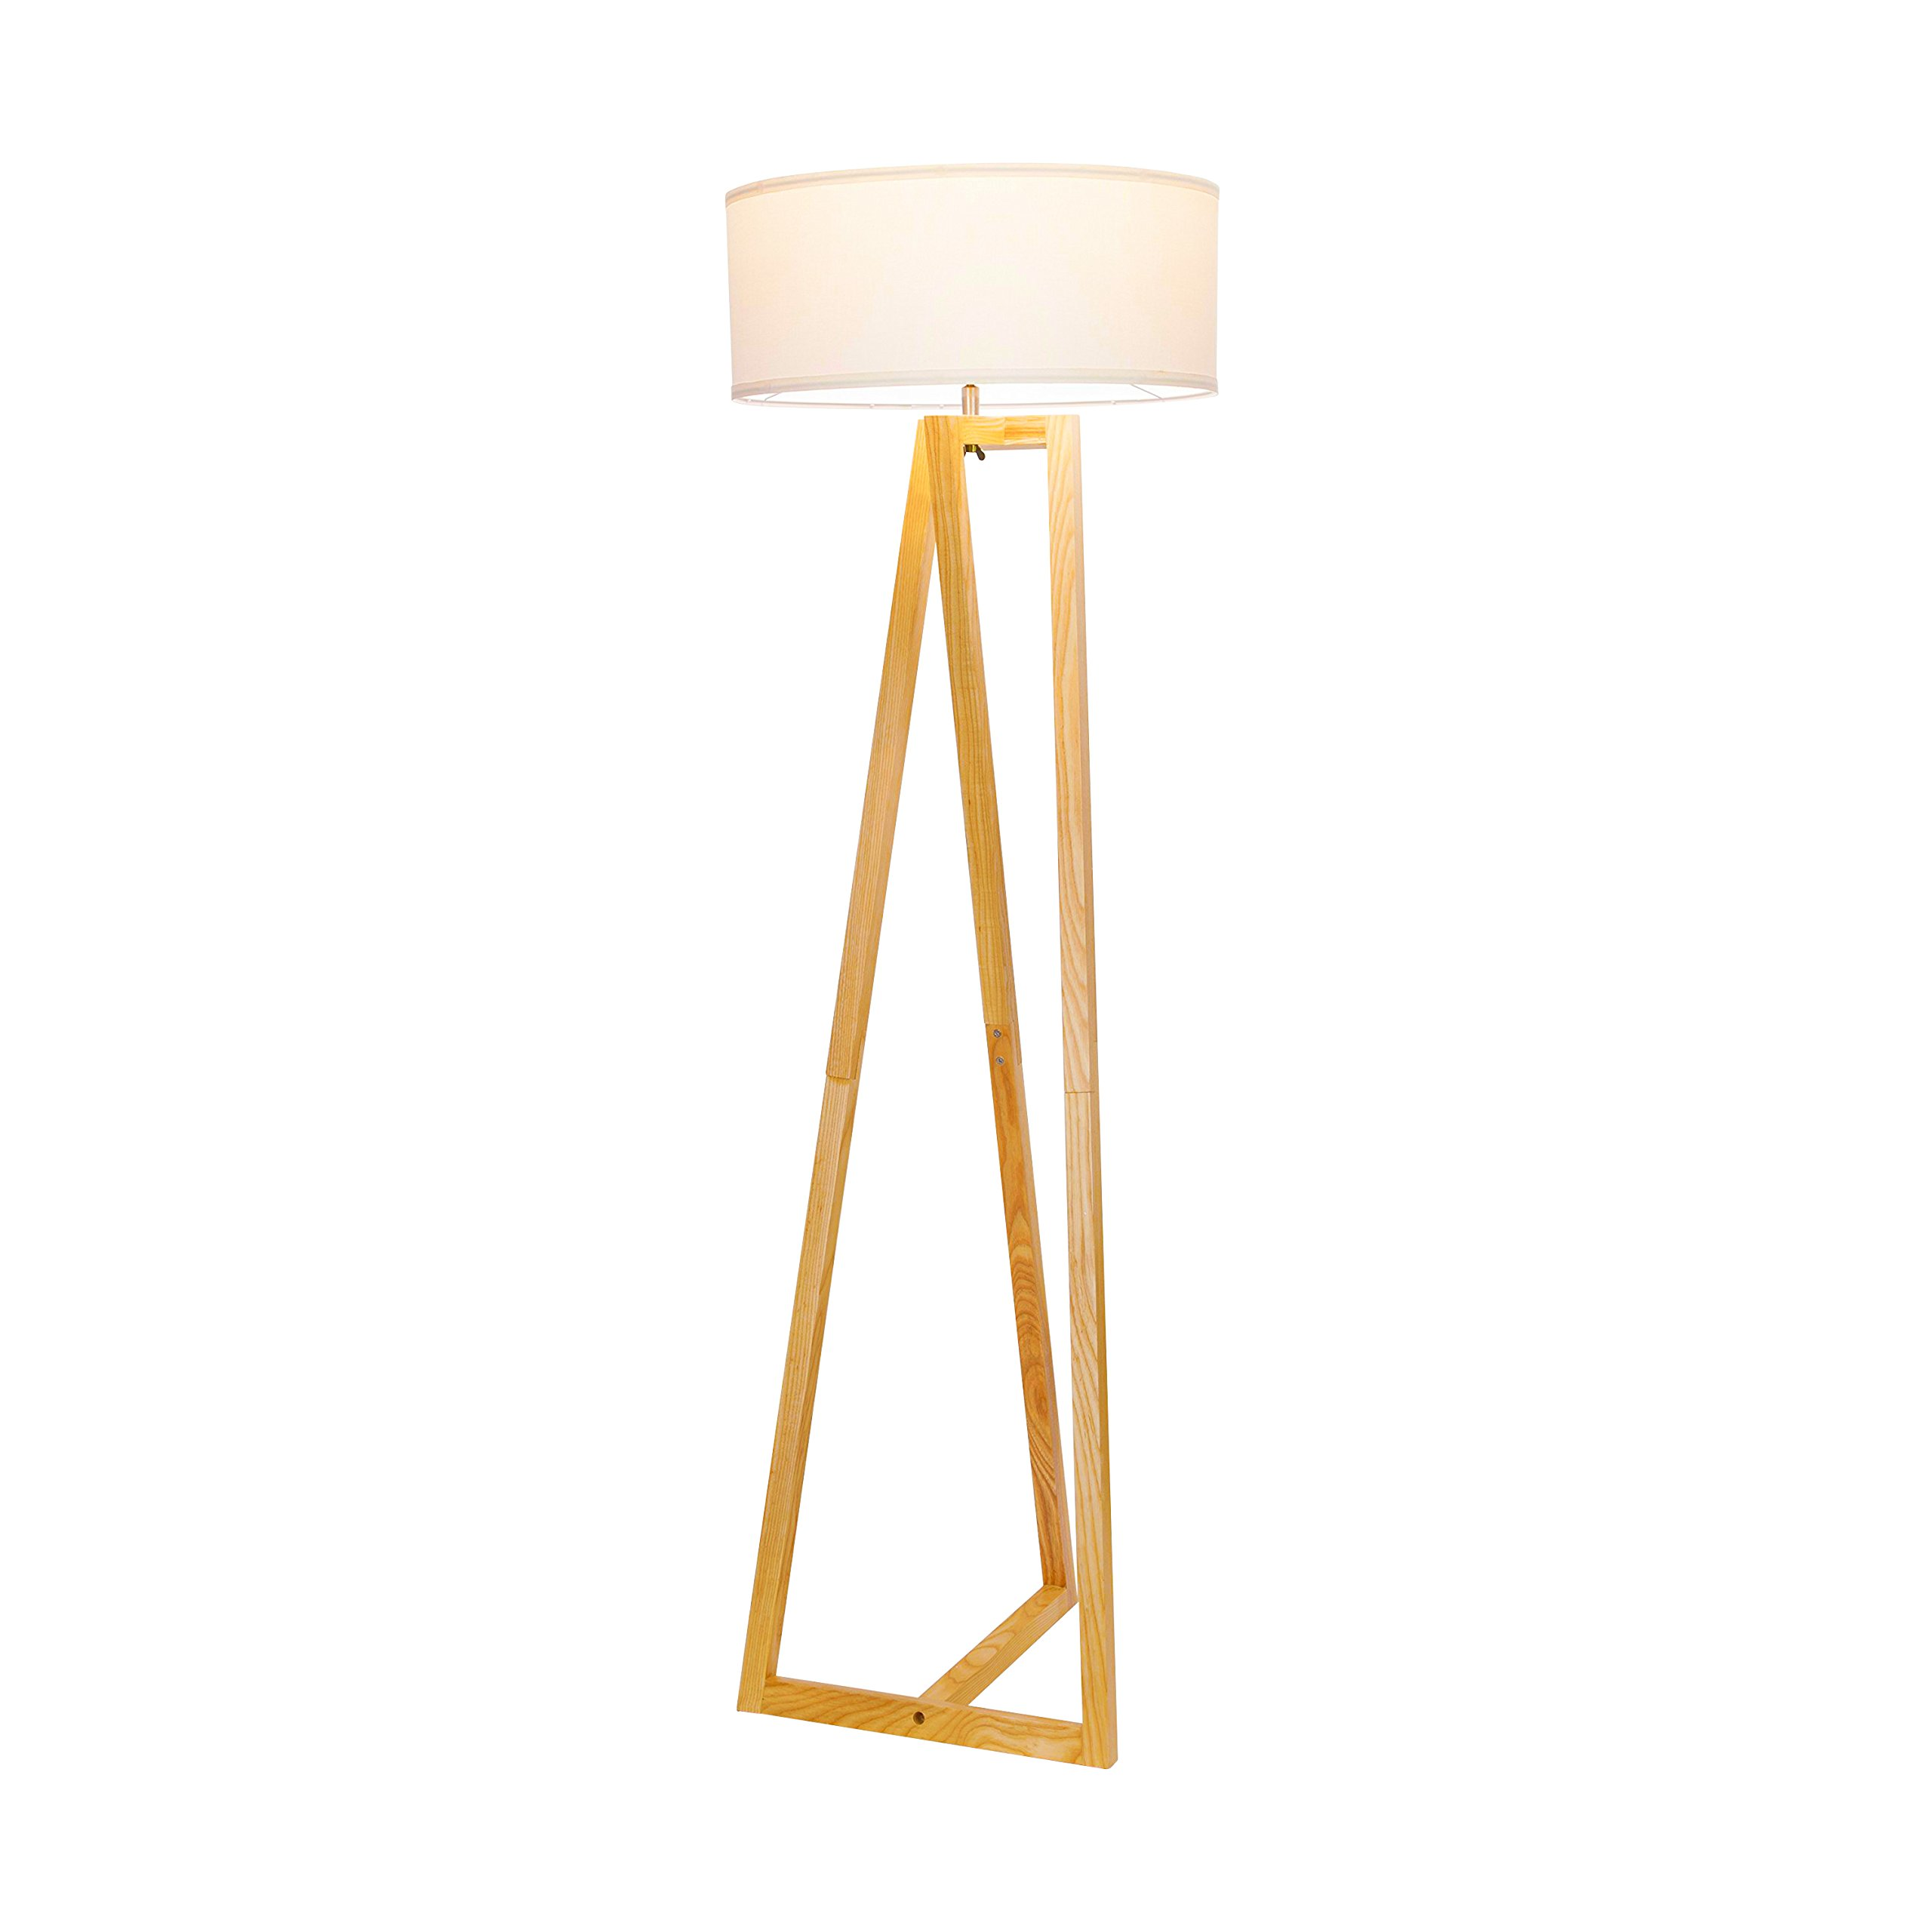 Brightech''Z'' Wood Tripod LED Floor Lamp - Mid Century Modern Light for Living Rooms & Family Rooms - Tall Standing Lighting for Contemporary Bedrooms & Offices by Brightech (Image #5)